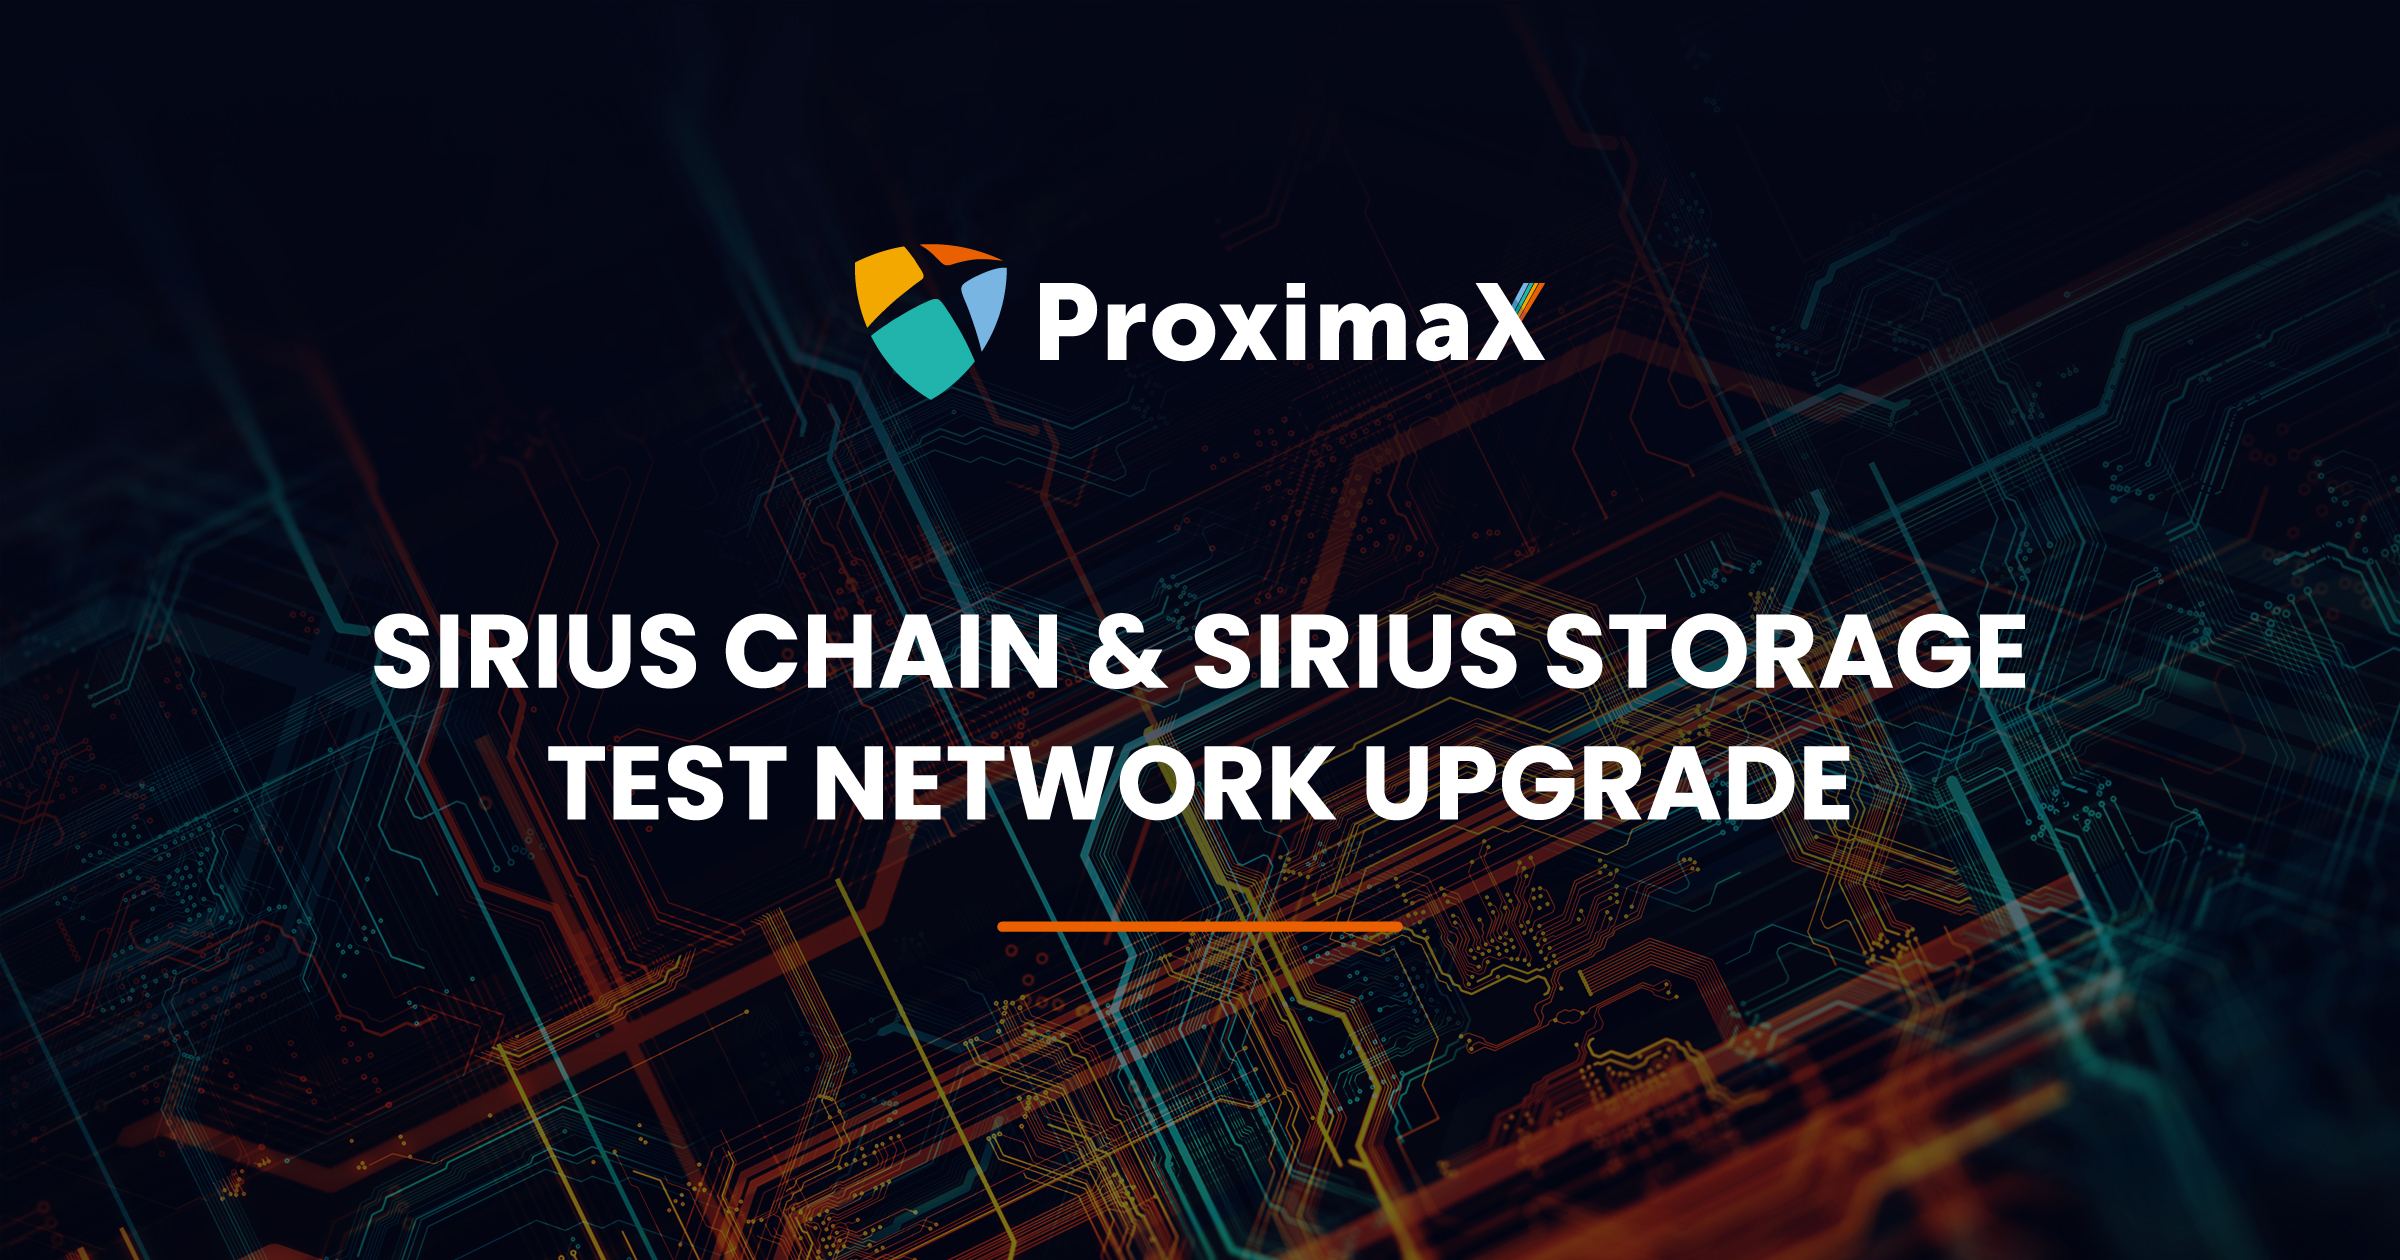 ProximaX Sirius Platform Test Network Upgrade